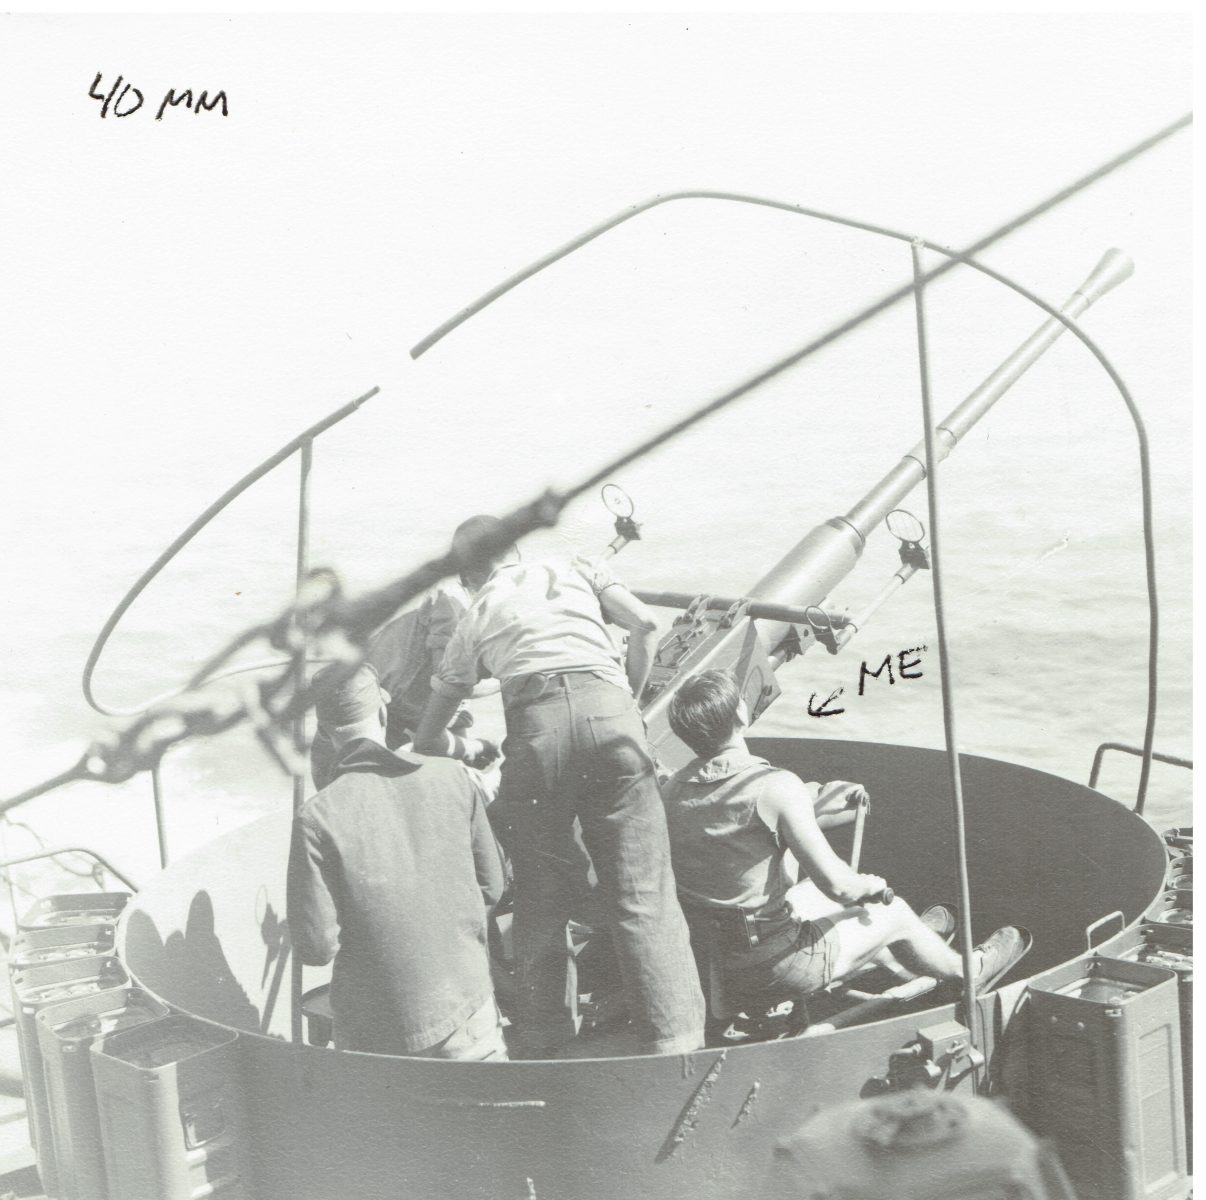 Radioman Second Class Roland Hetfeld (far right) looking down the barrel of a 40 mm anti-aircraft gun during crew training.